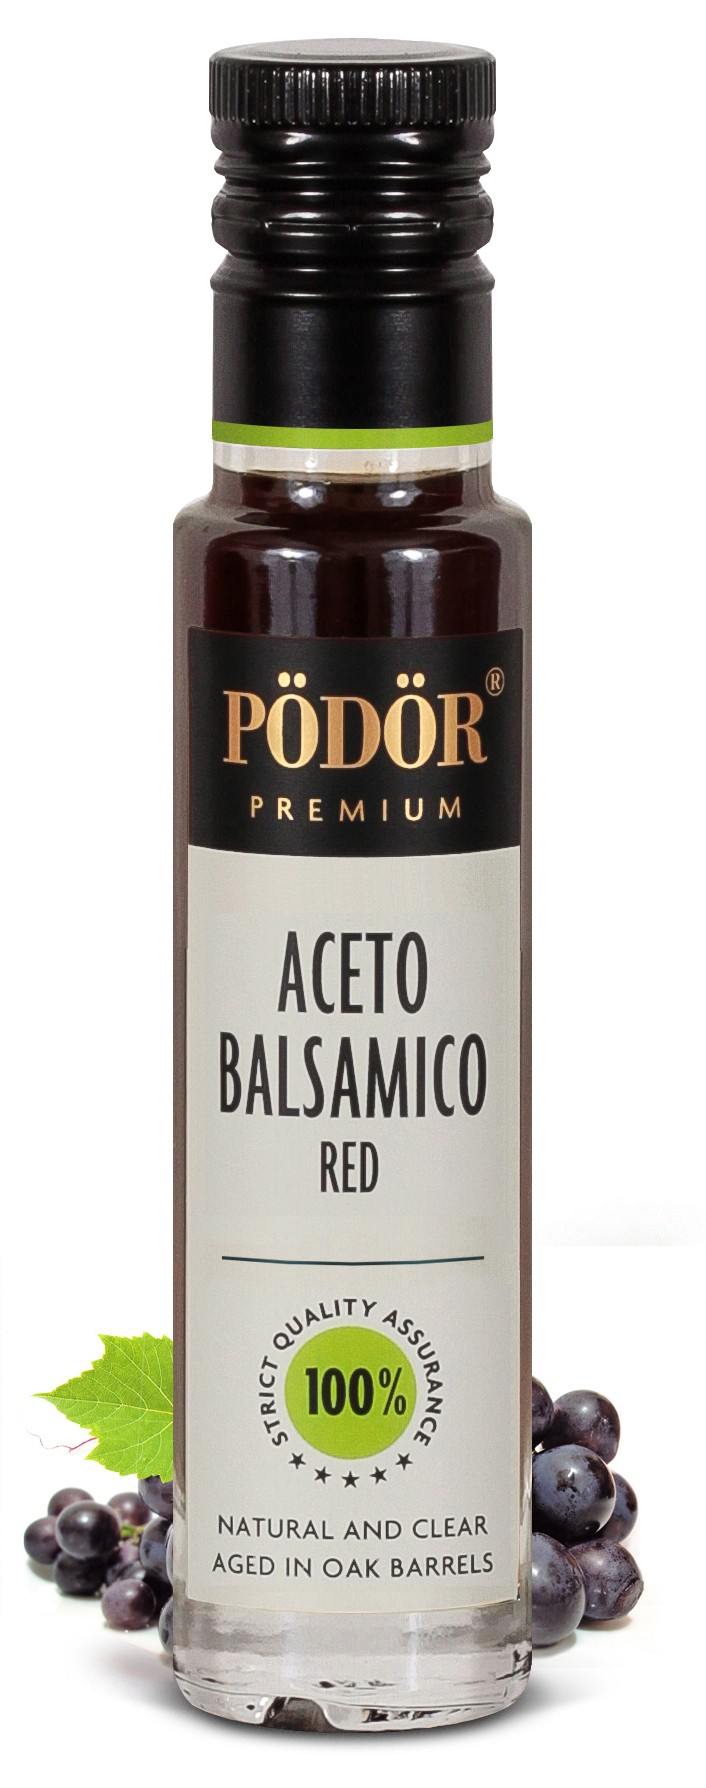 Aceto Balsamico Red